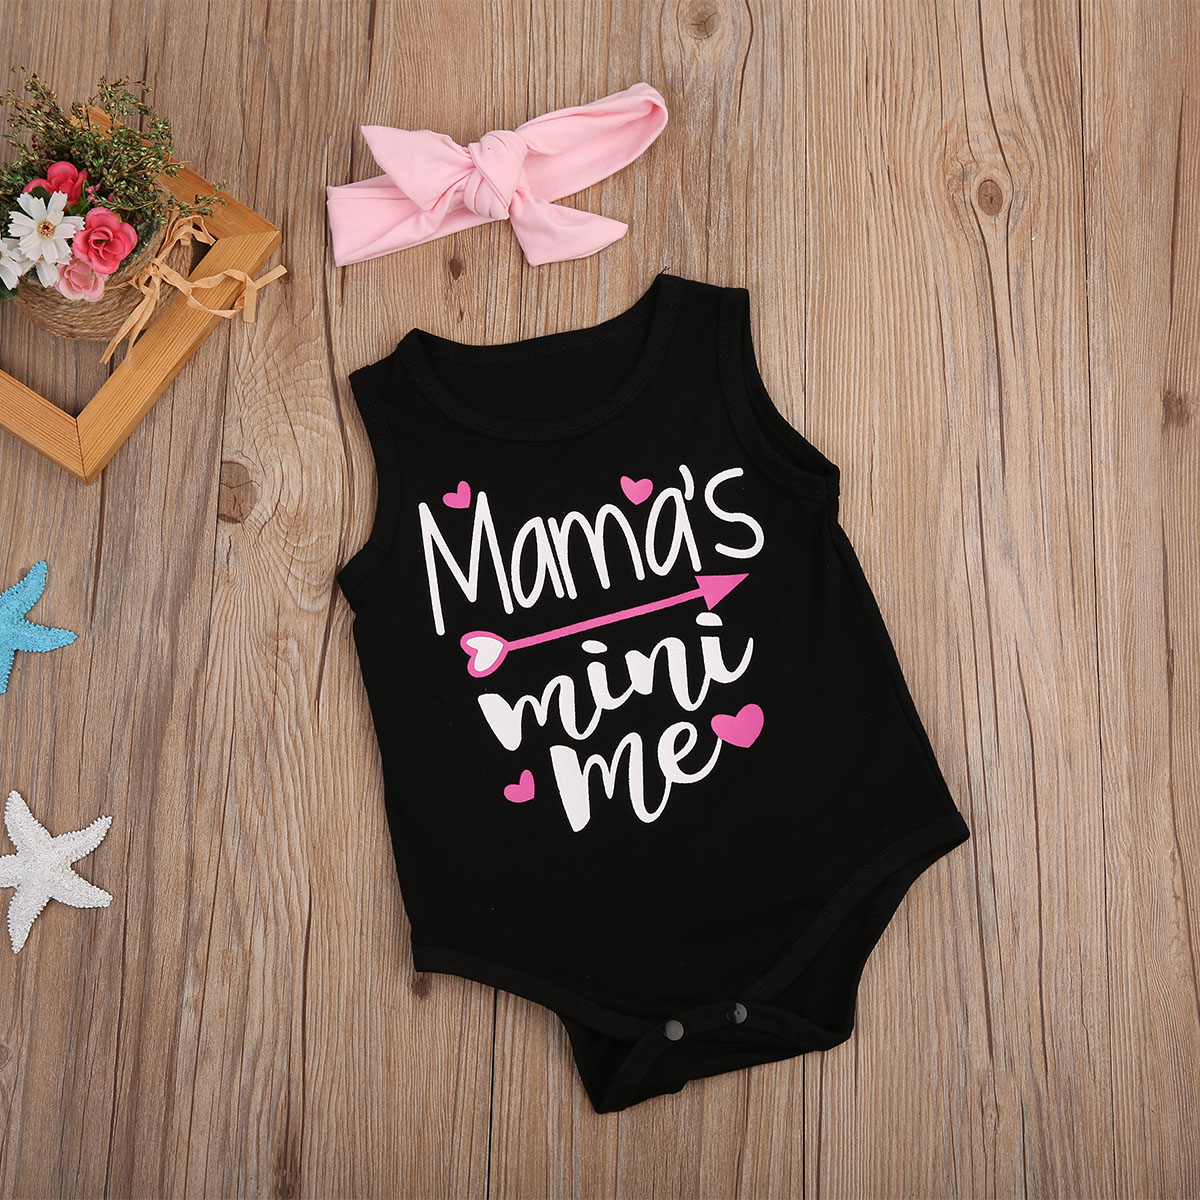 Newborn Baby Girl Clothes Sleeveless Letters Romper Jumpsuit Headband 2pcs Sunsuit Outfits Summer Infant Children Clothing 3